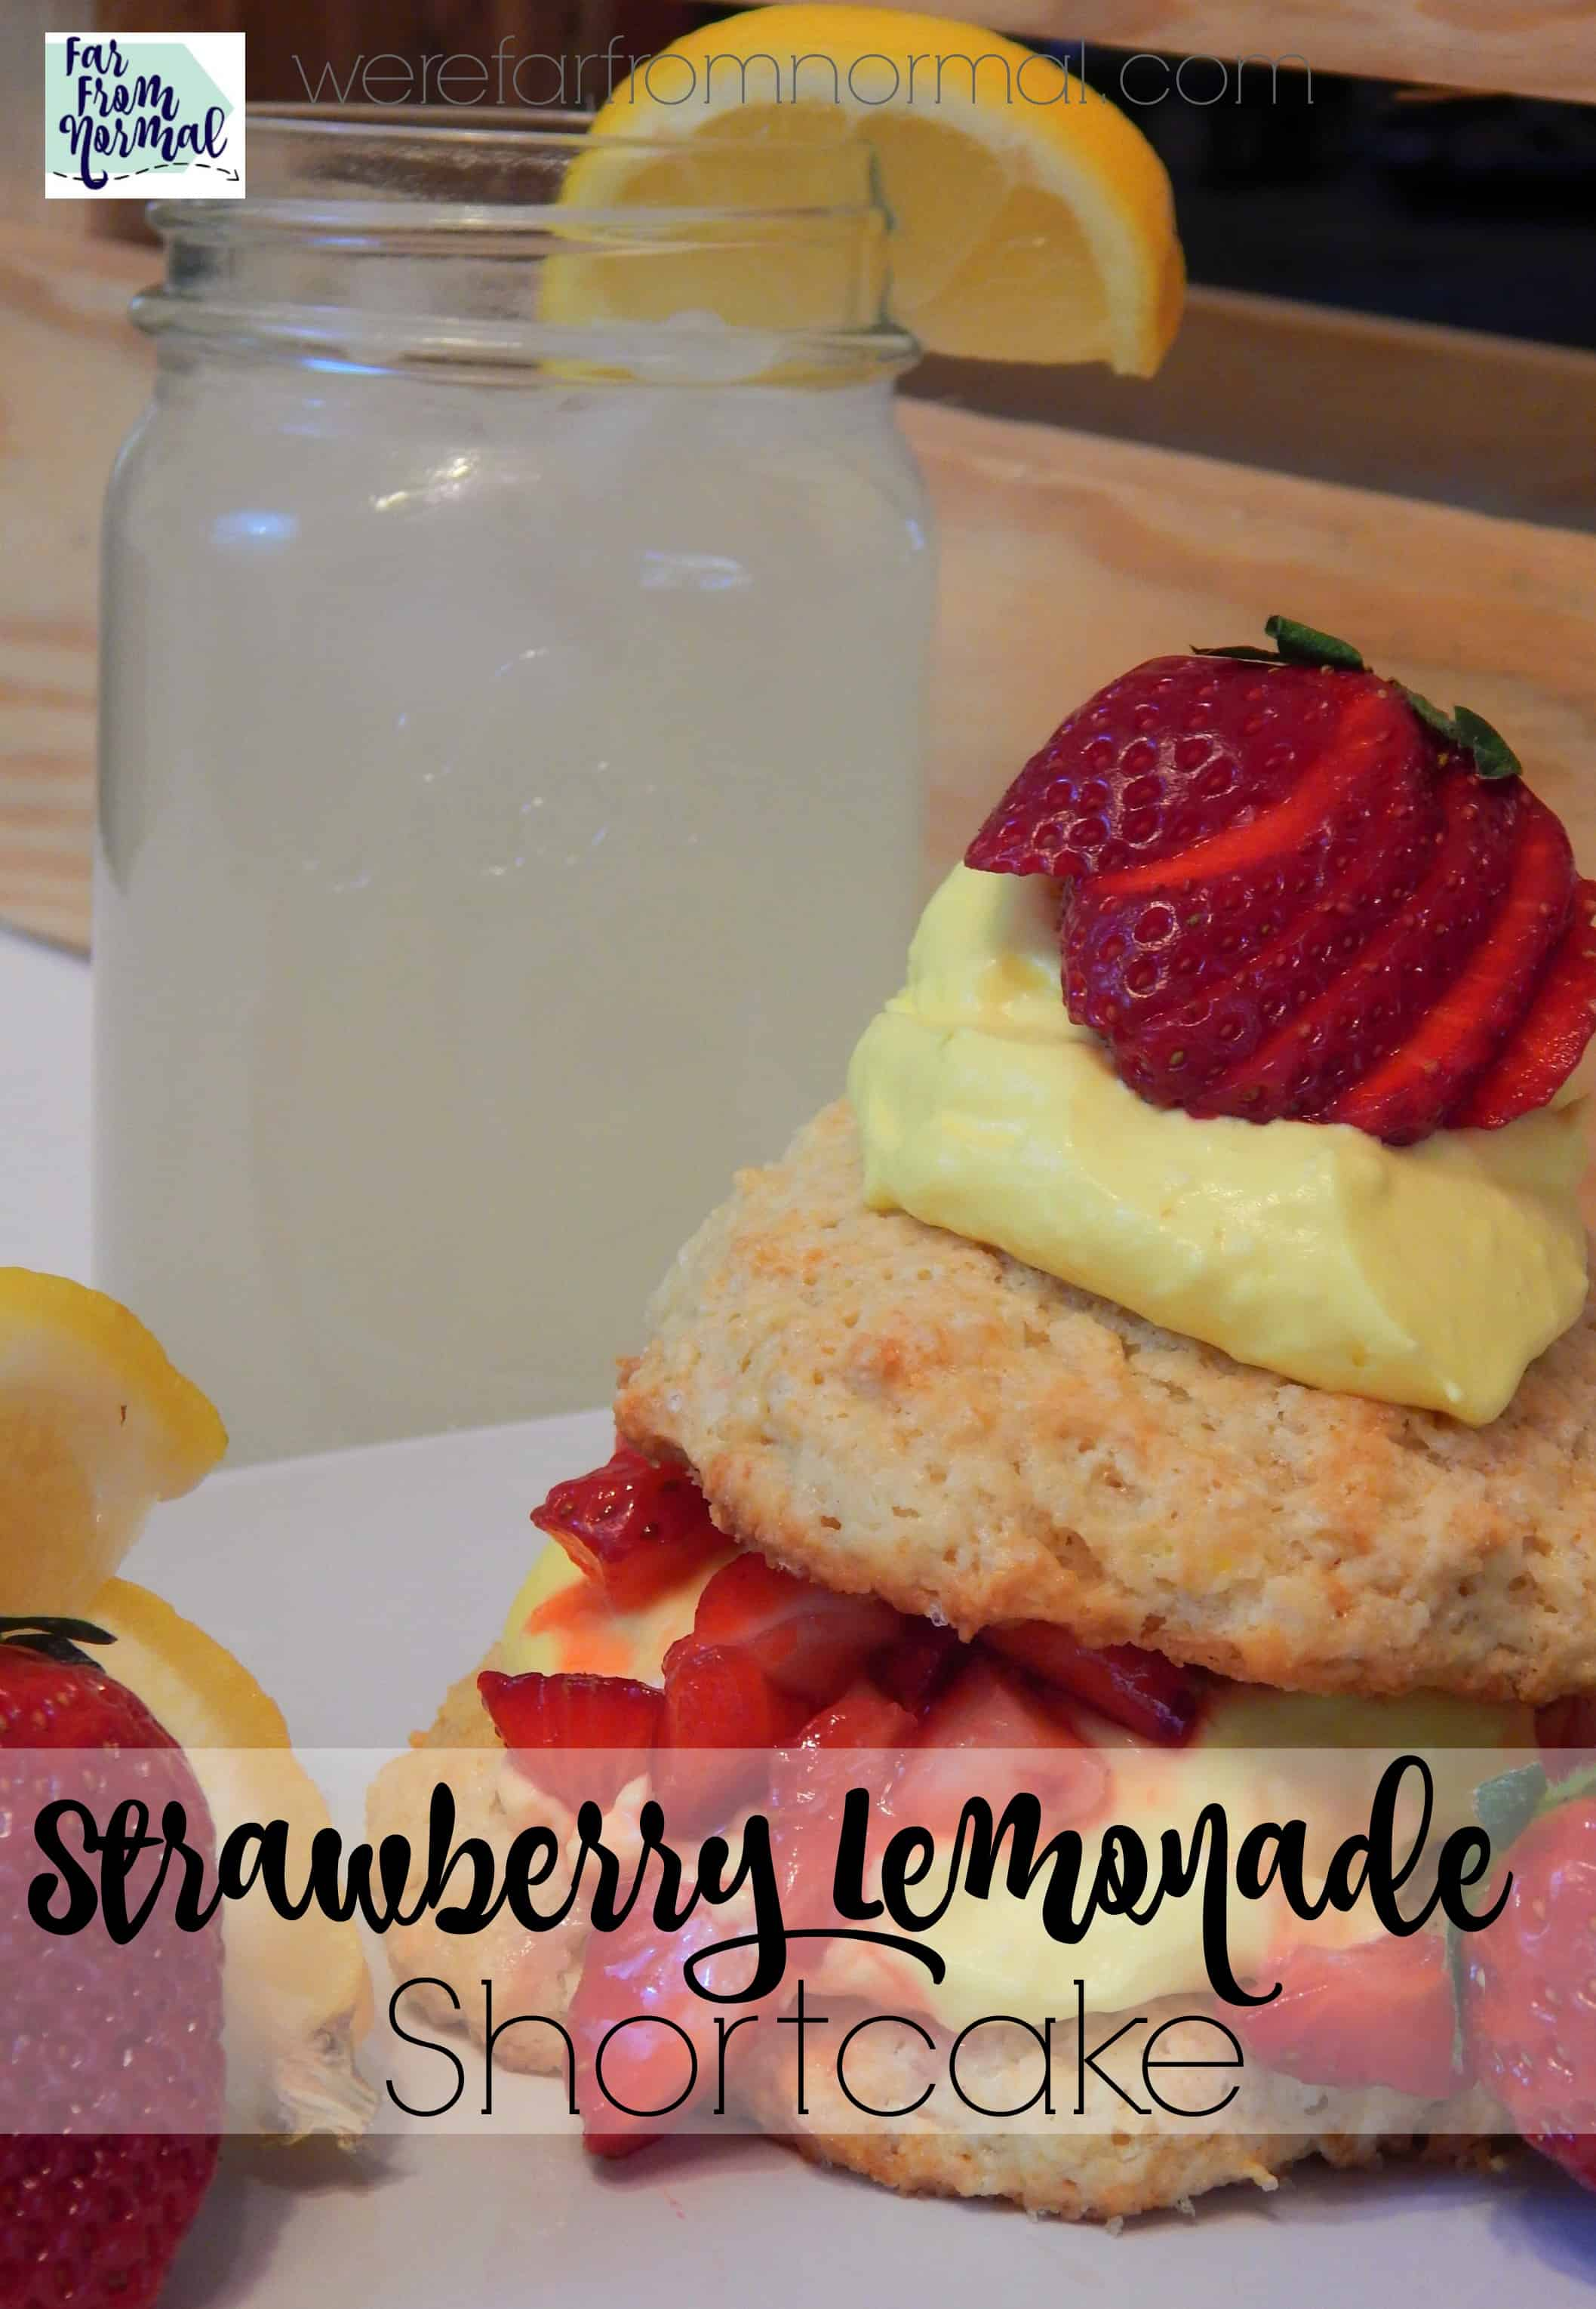 Delicious Strawberry Lemonade Shortcake